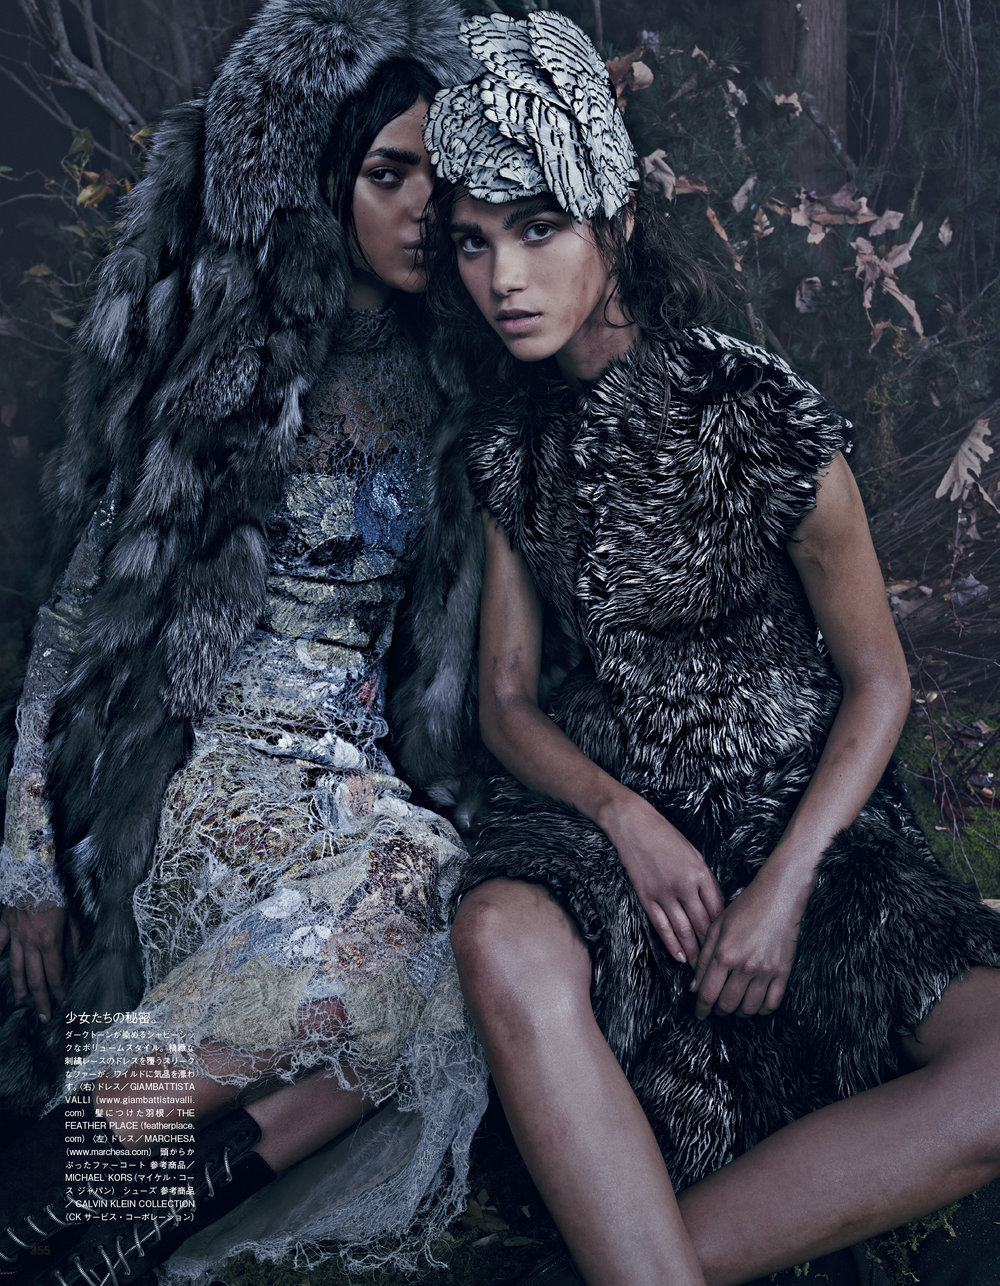 Giovanna-Battaglia-Into-The-Woods-Vogue-Japan-Emma-Summerton-05.jpg